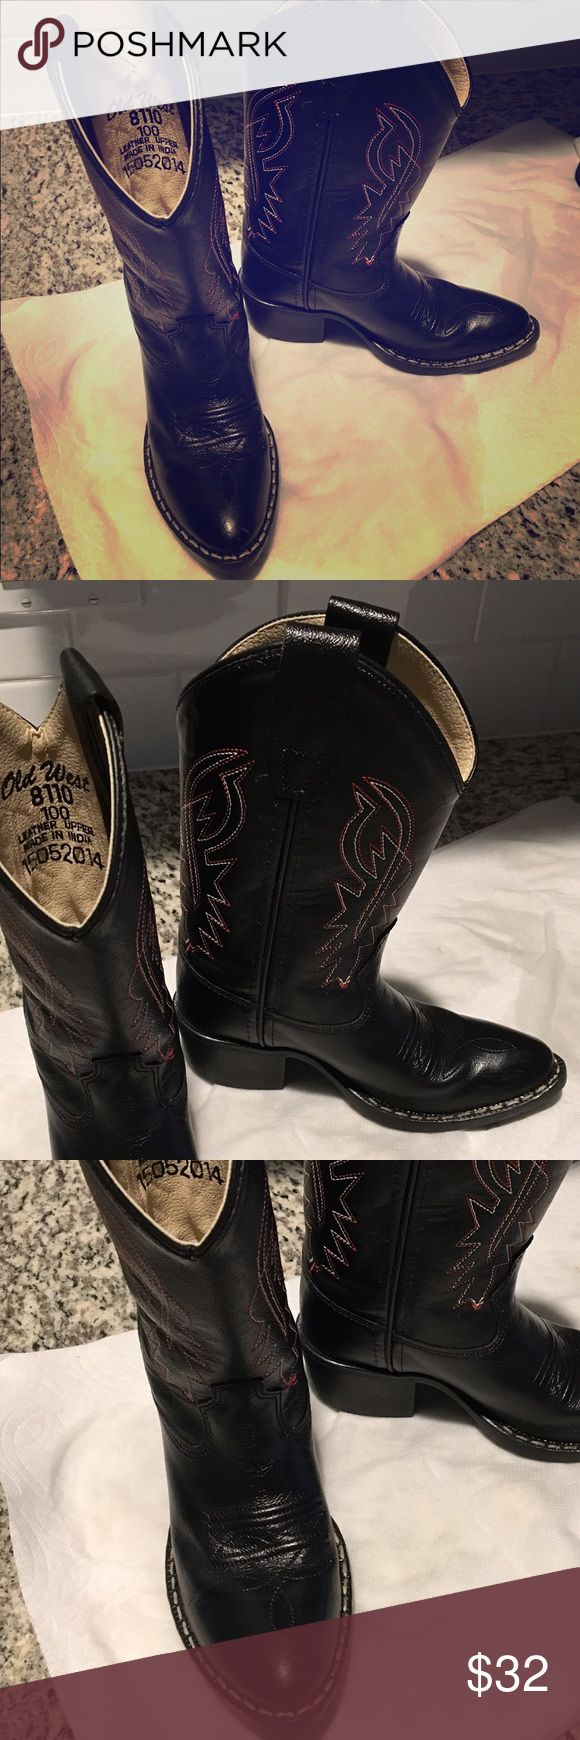 Old West Boots 🤠 Old West Kids Western Boots. Black with red and white stitching. Worn twice. Toddler size 10 Shoes Boots